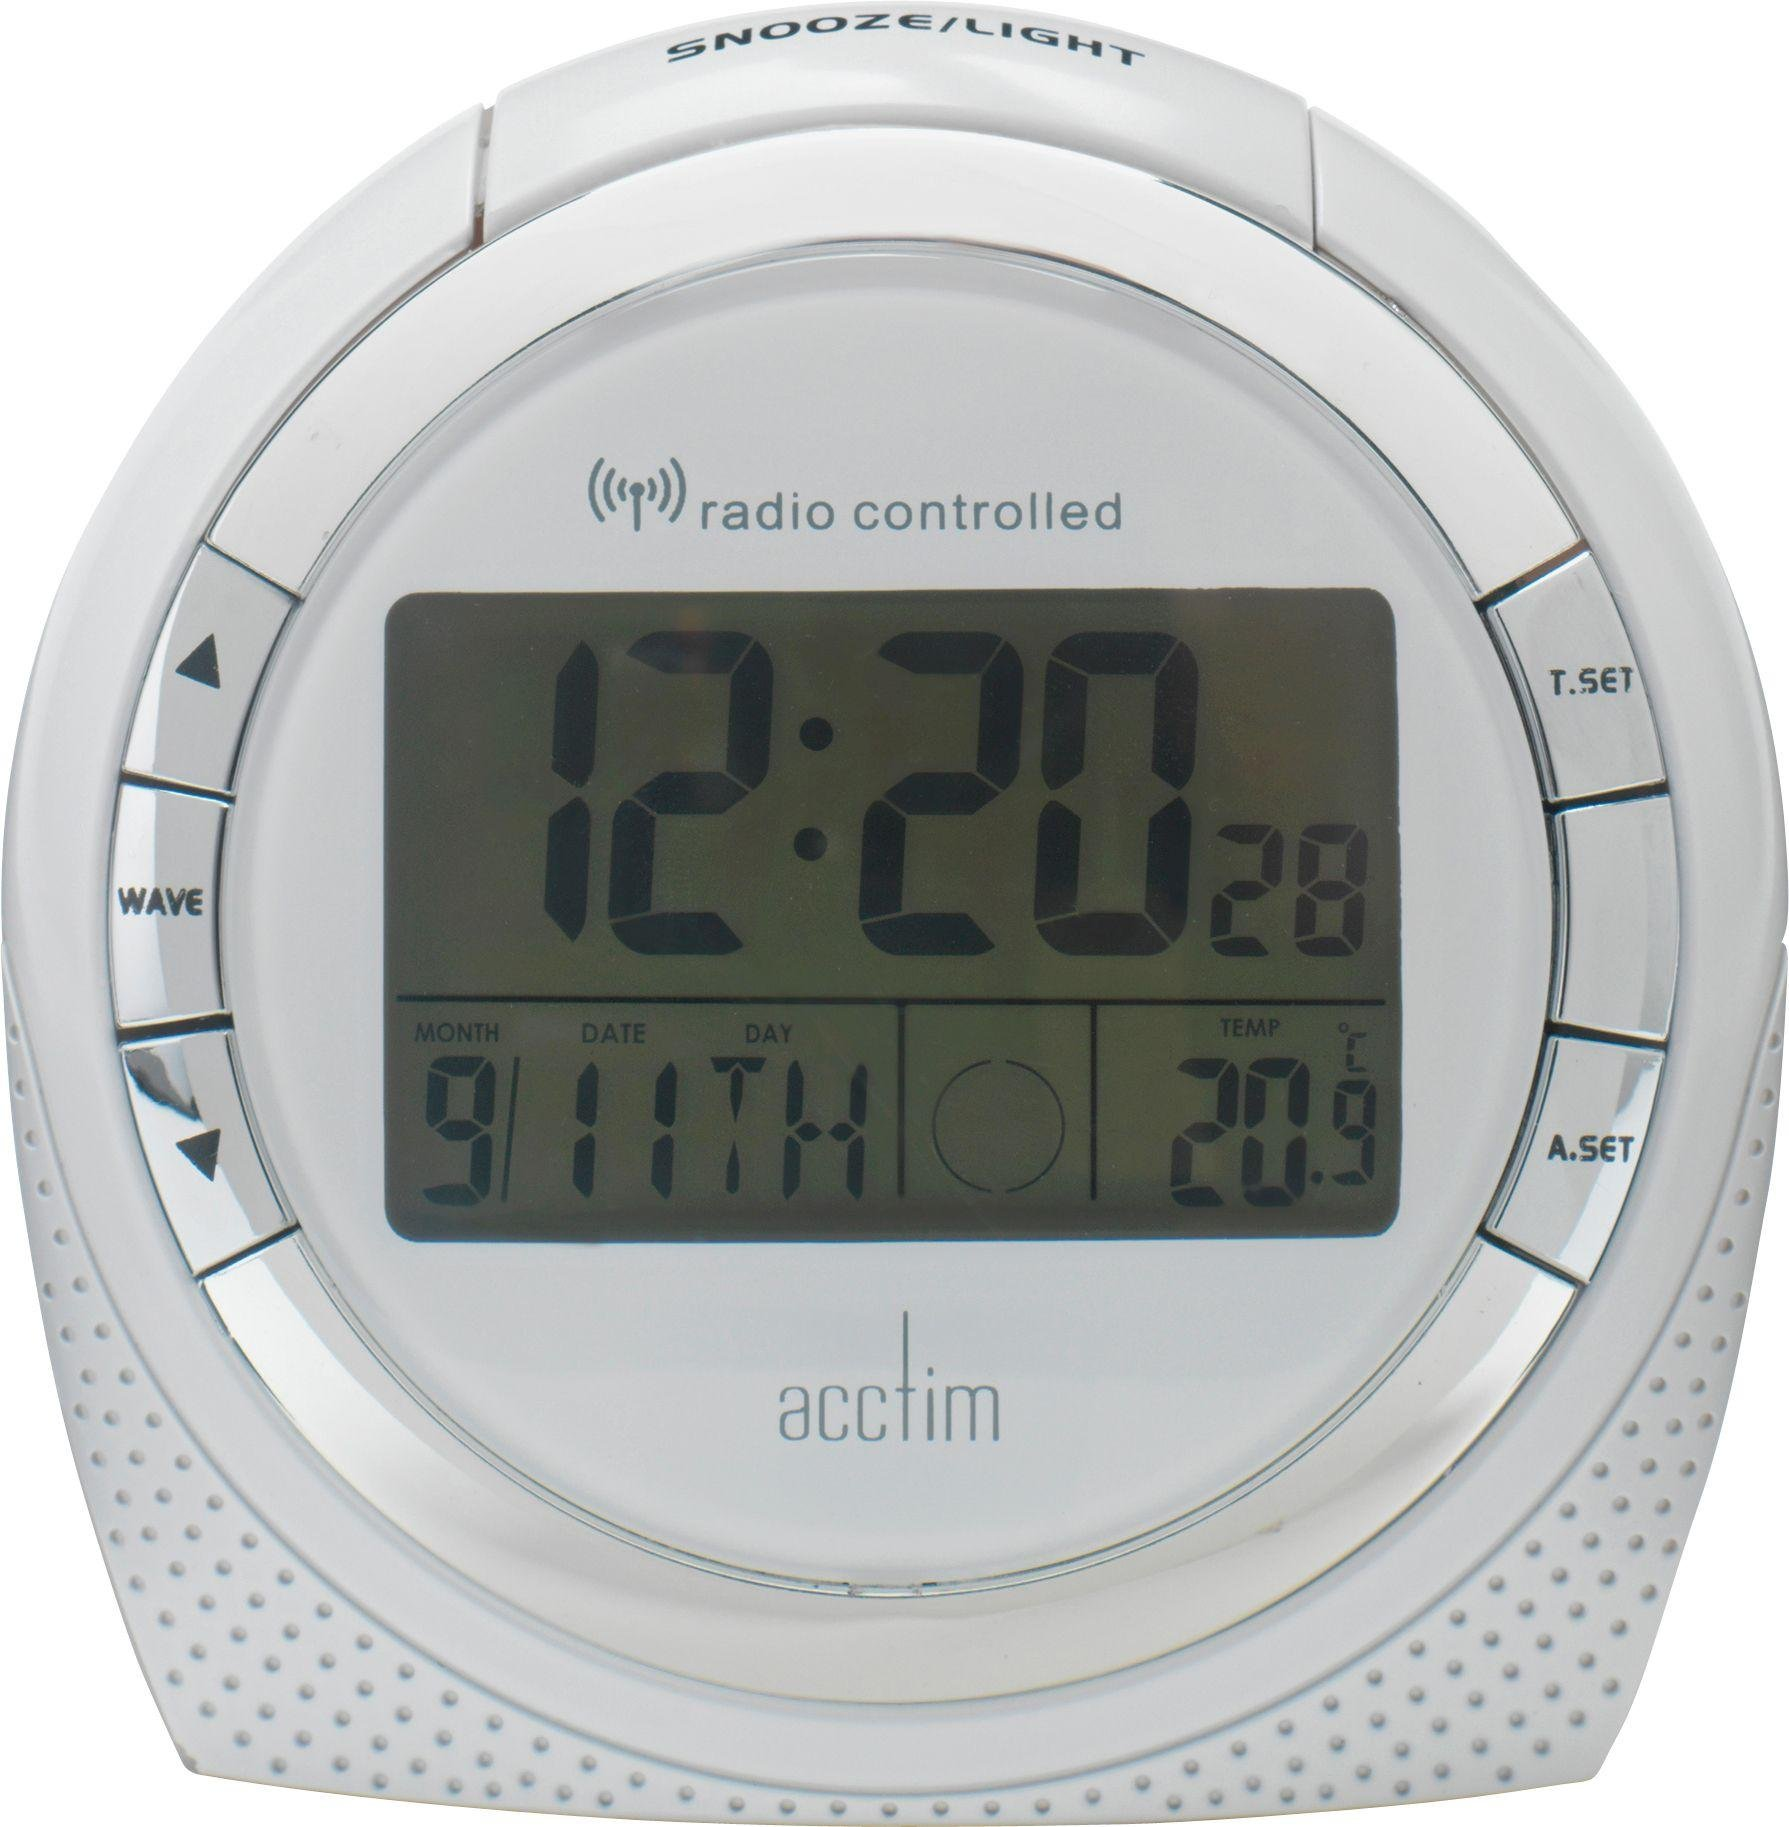 Acctim Radio Controlled Alarm Clock